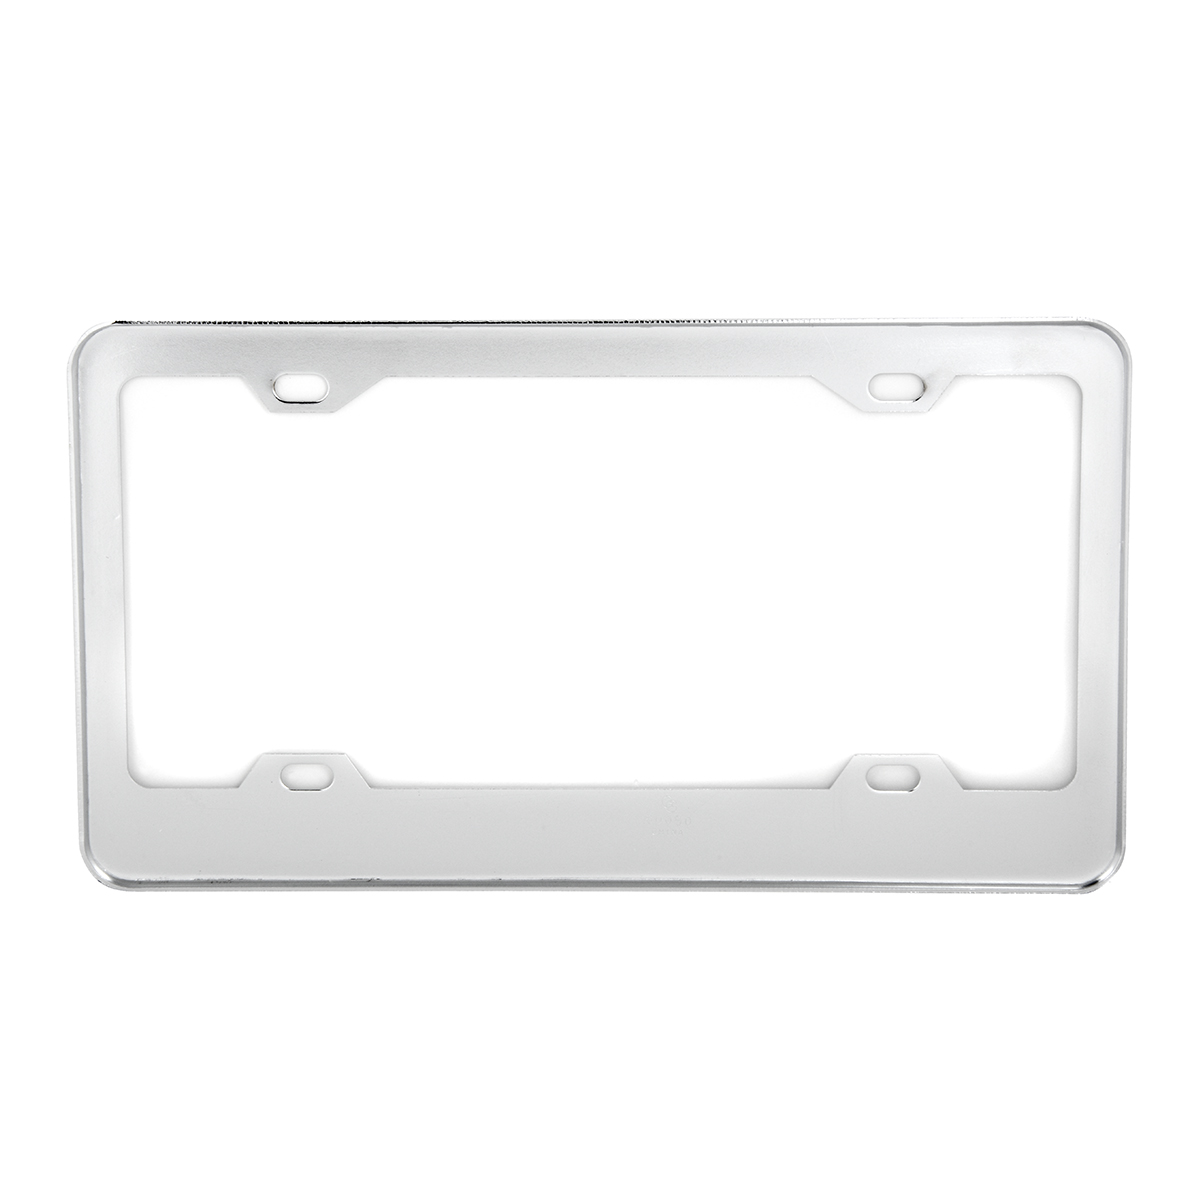 60050 Classic Chrome Plastic Steel 4-Hole License Plate Frames - Back View